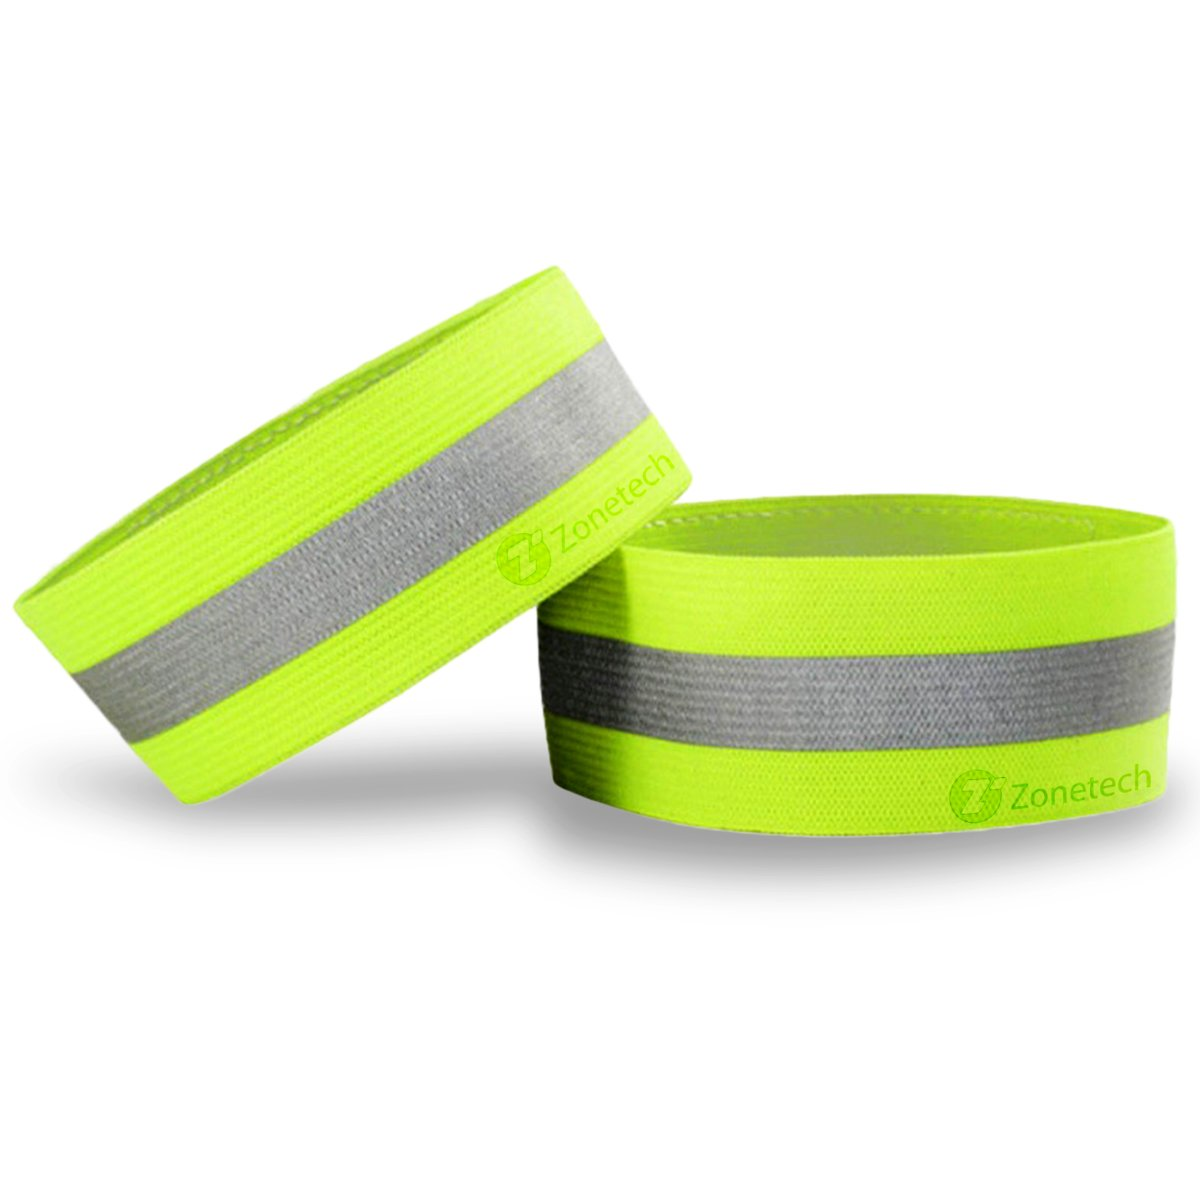 Camping & Hiking Nice Sports Safety Reflective Sticker Luminous Night Safety Reflective Arm Band Belt Strap For Outdoor Sports Night Running Biking